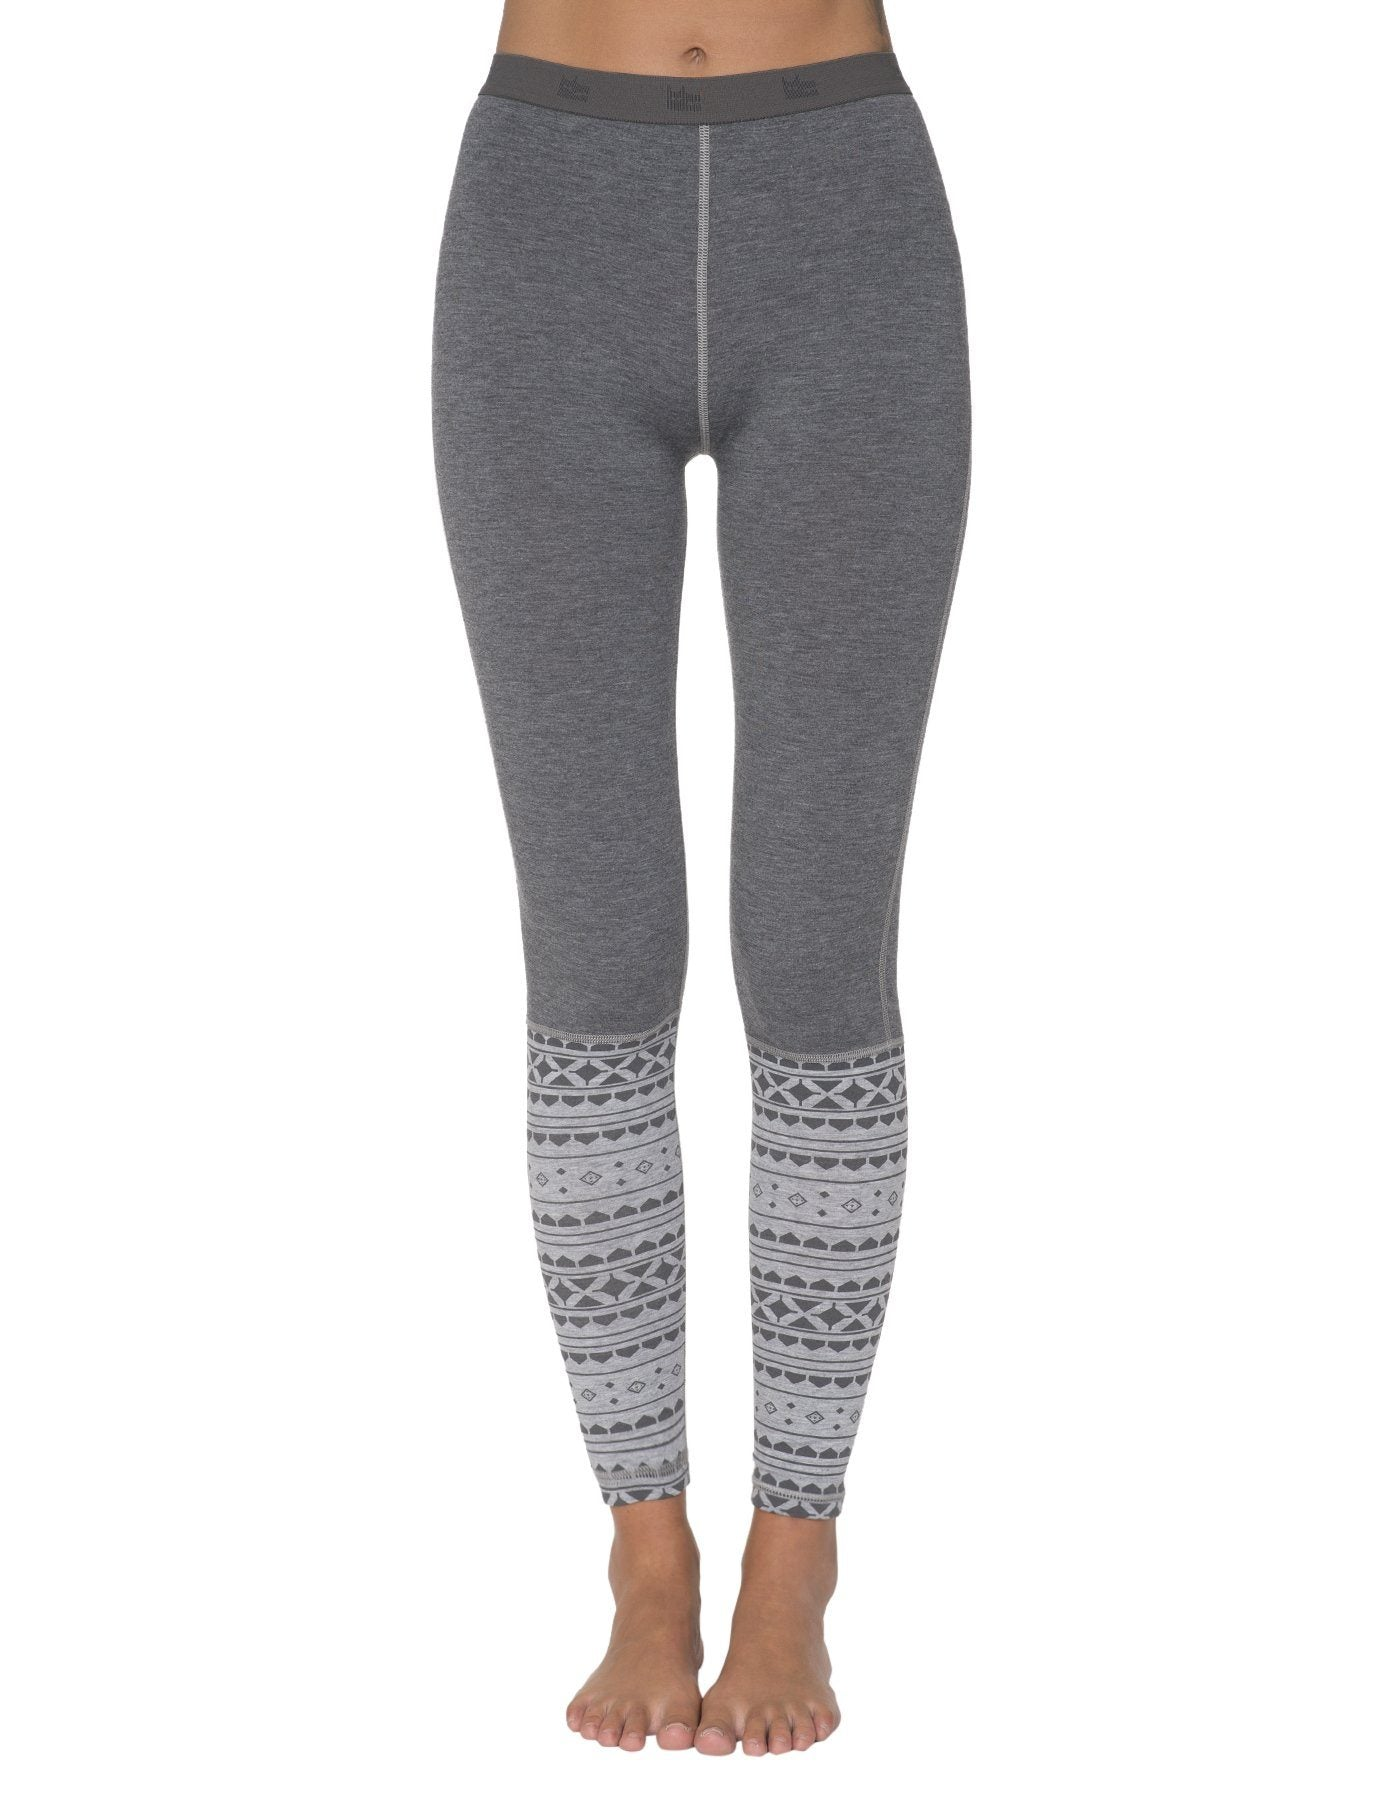 Varg - Women's Idre Function Pant - Recycled Polyester - Weekendbee - sustainable sportswear